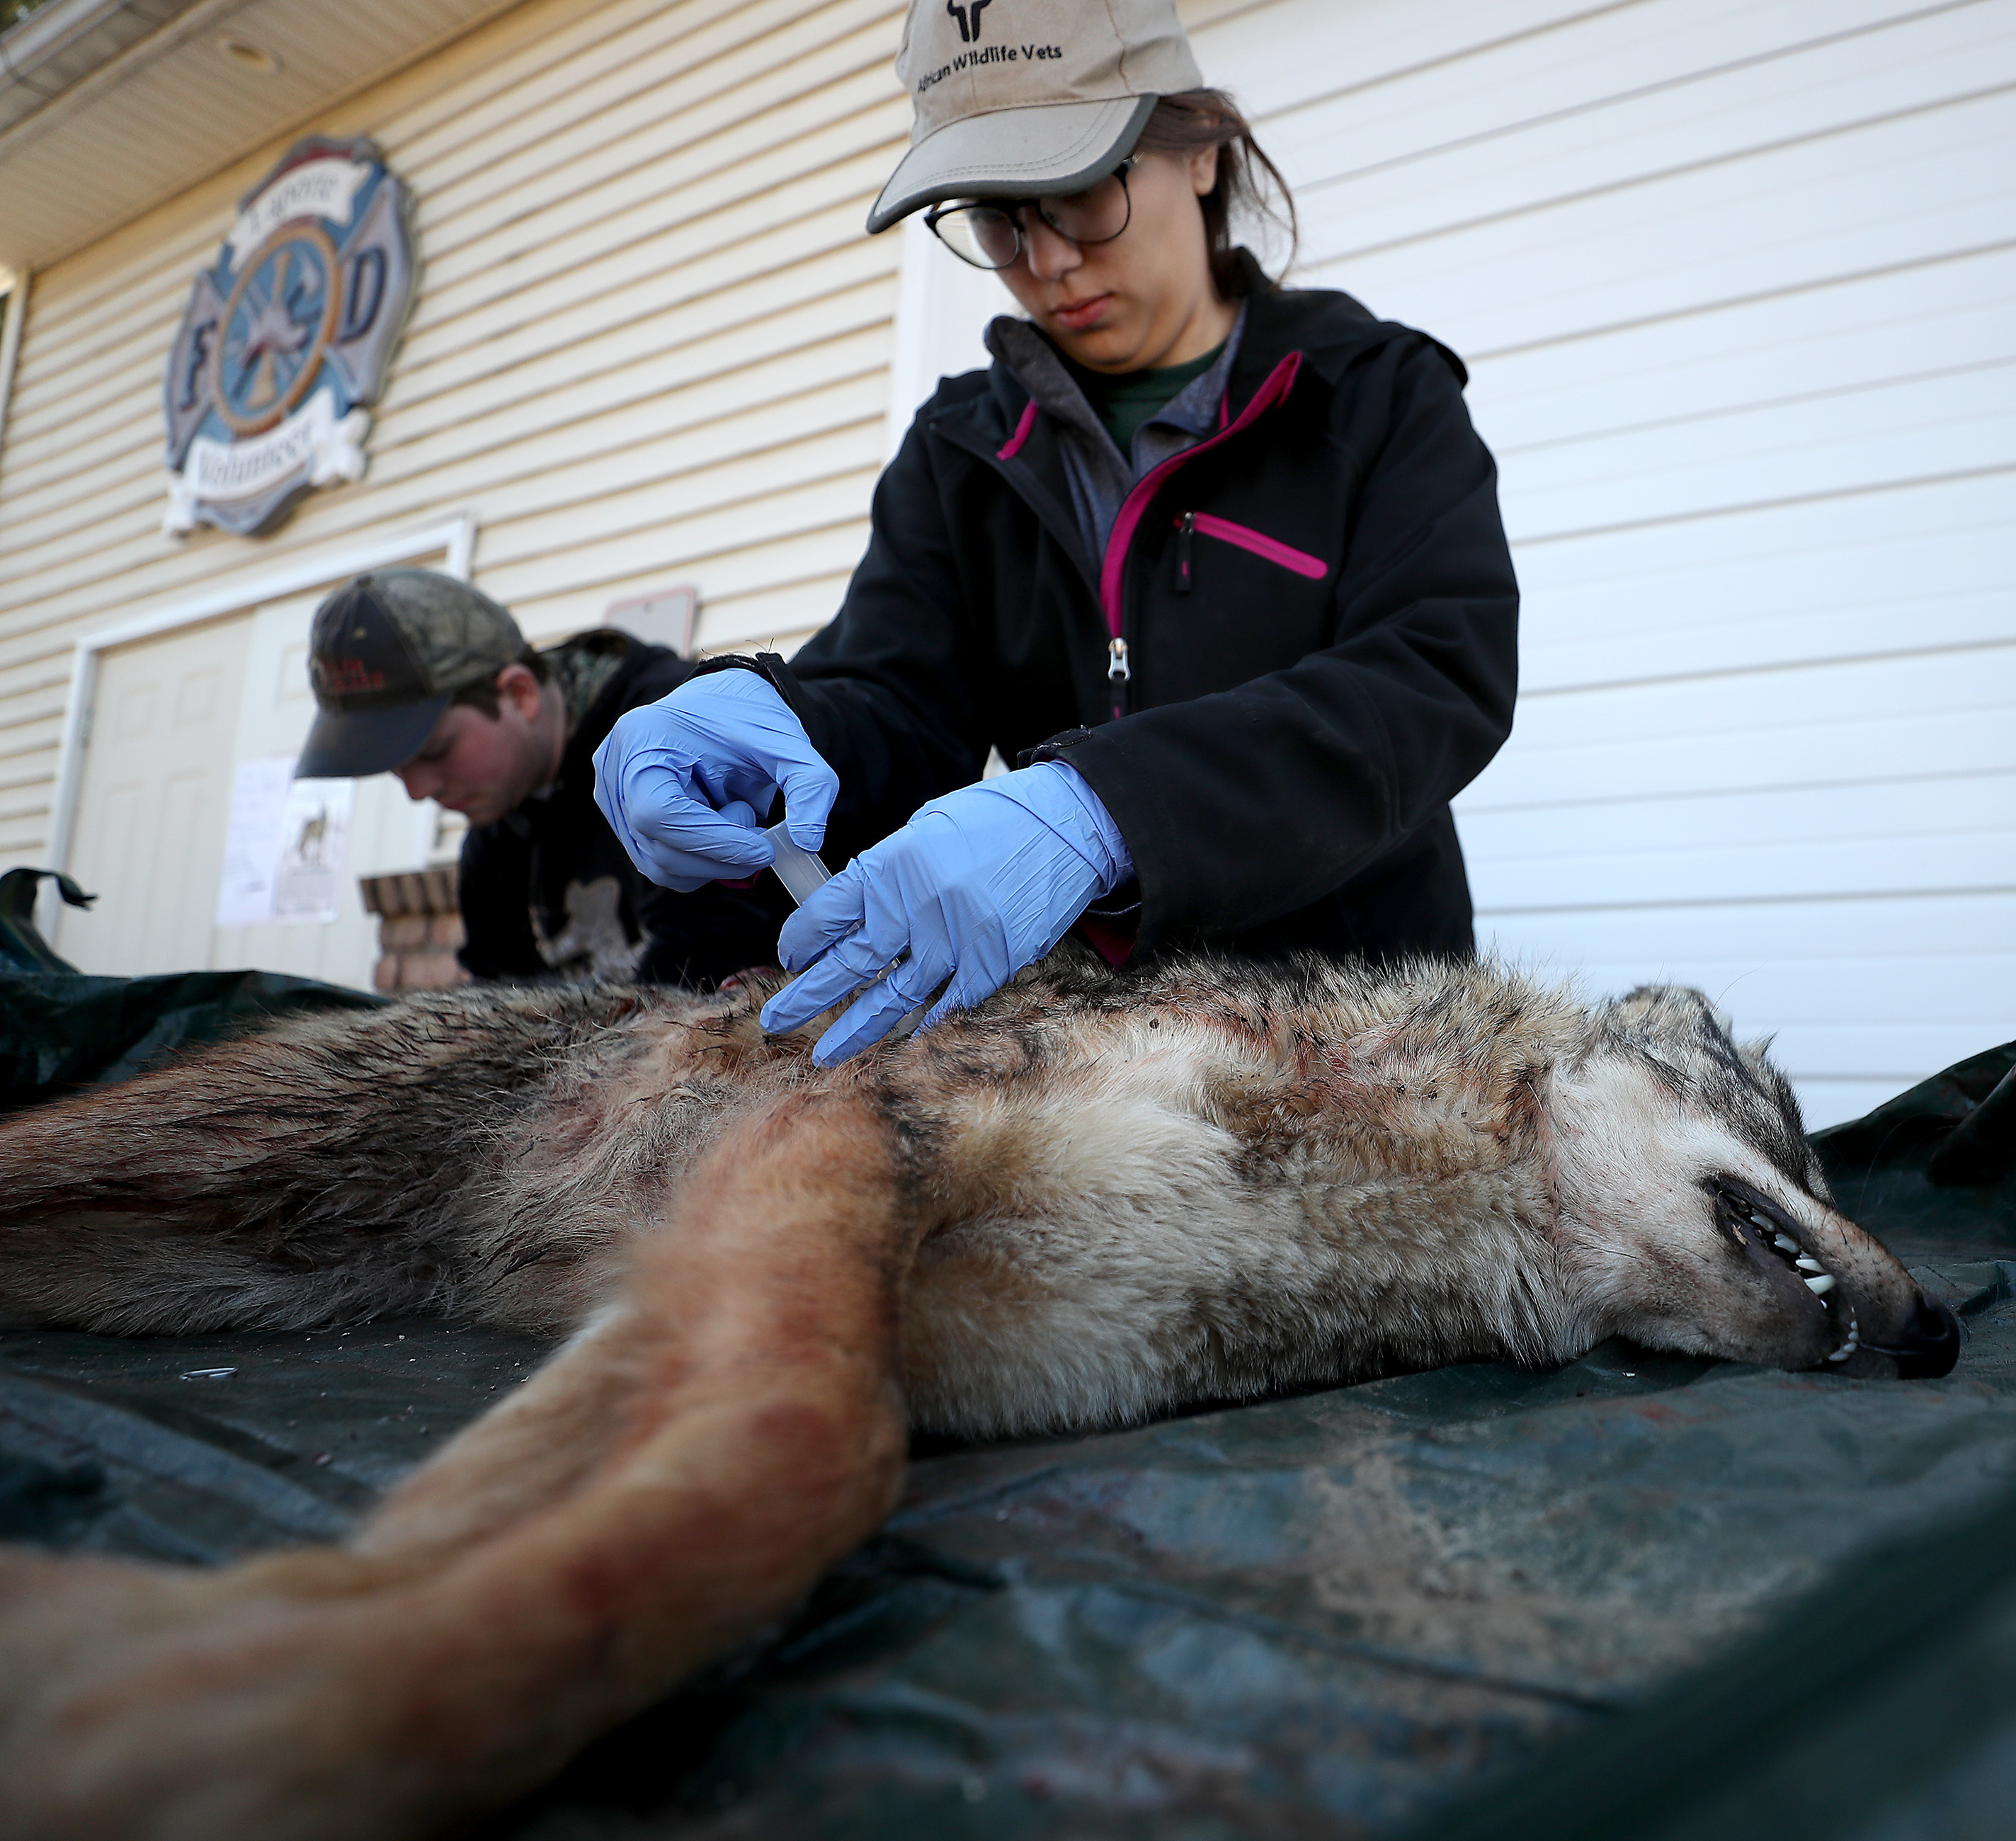 Alec Smith and Jacqueline Chavez of Keystone College take notes and blood samples on one of the coyotes during the 17th annual Sullivan County Coyote Hunt in Laporte, Pa., on February 23, 2020.DAVID MAIALETTI / Staff Photographer